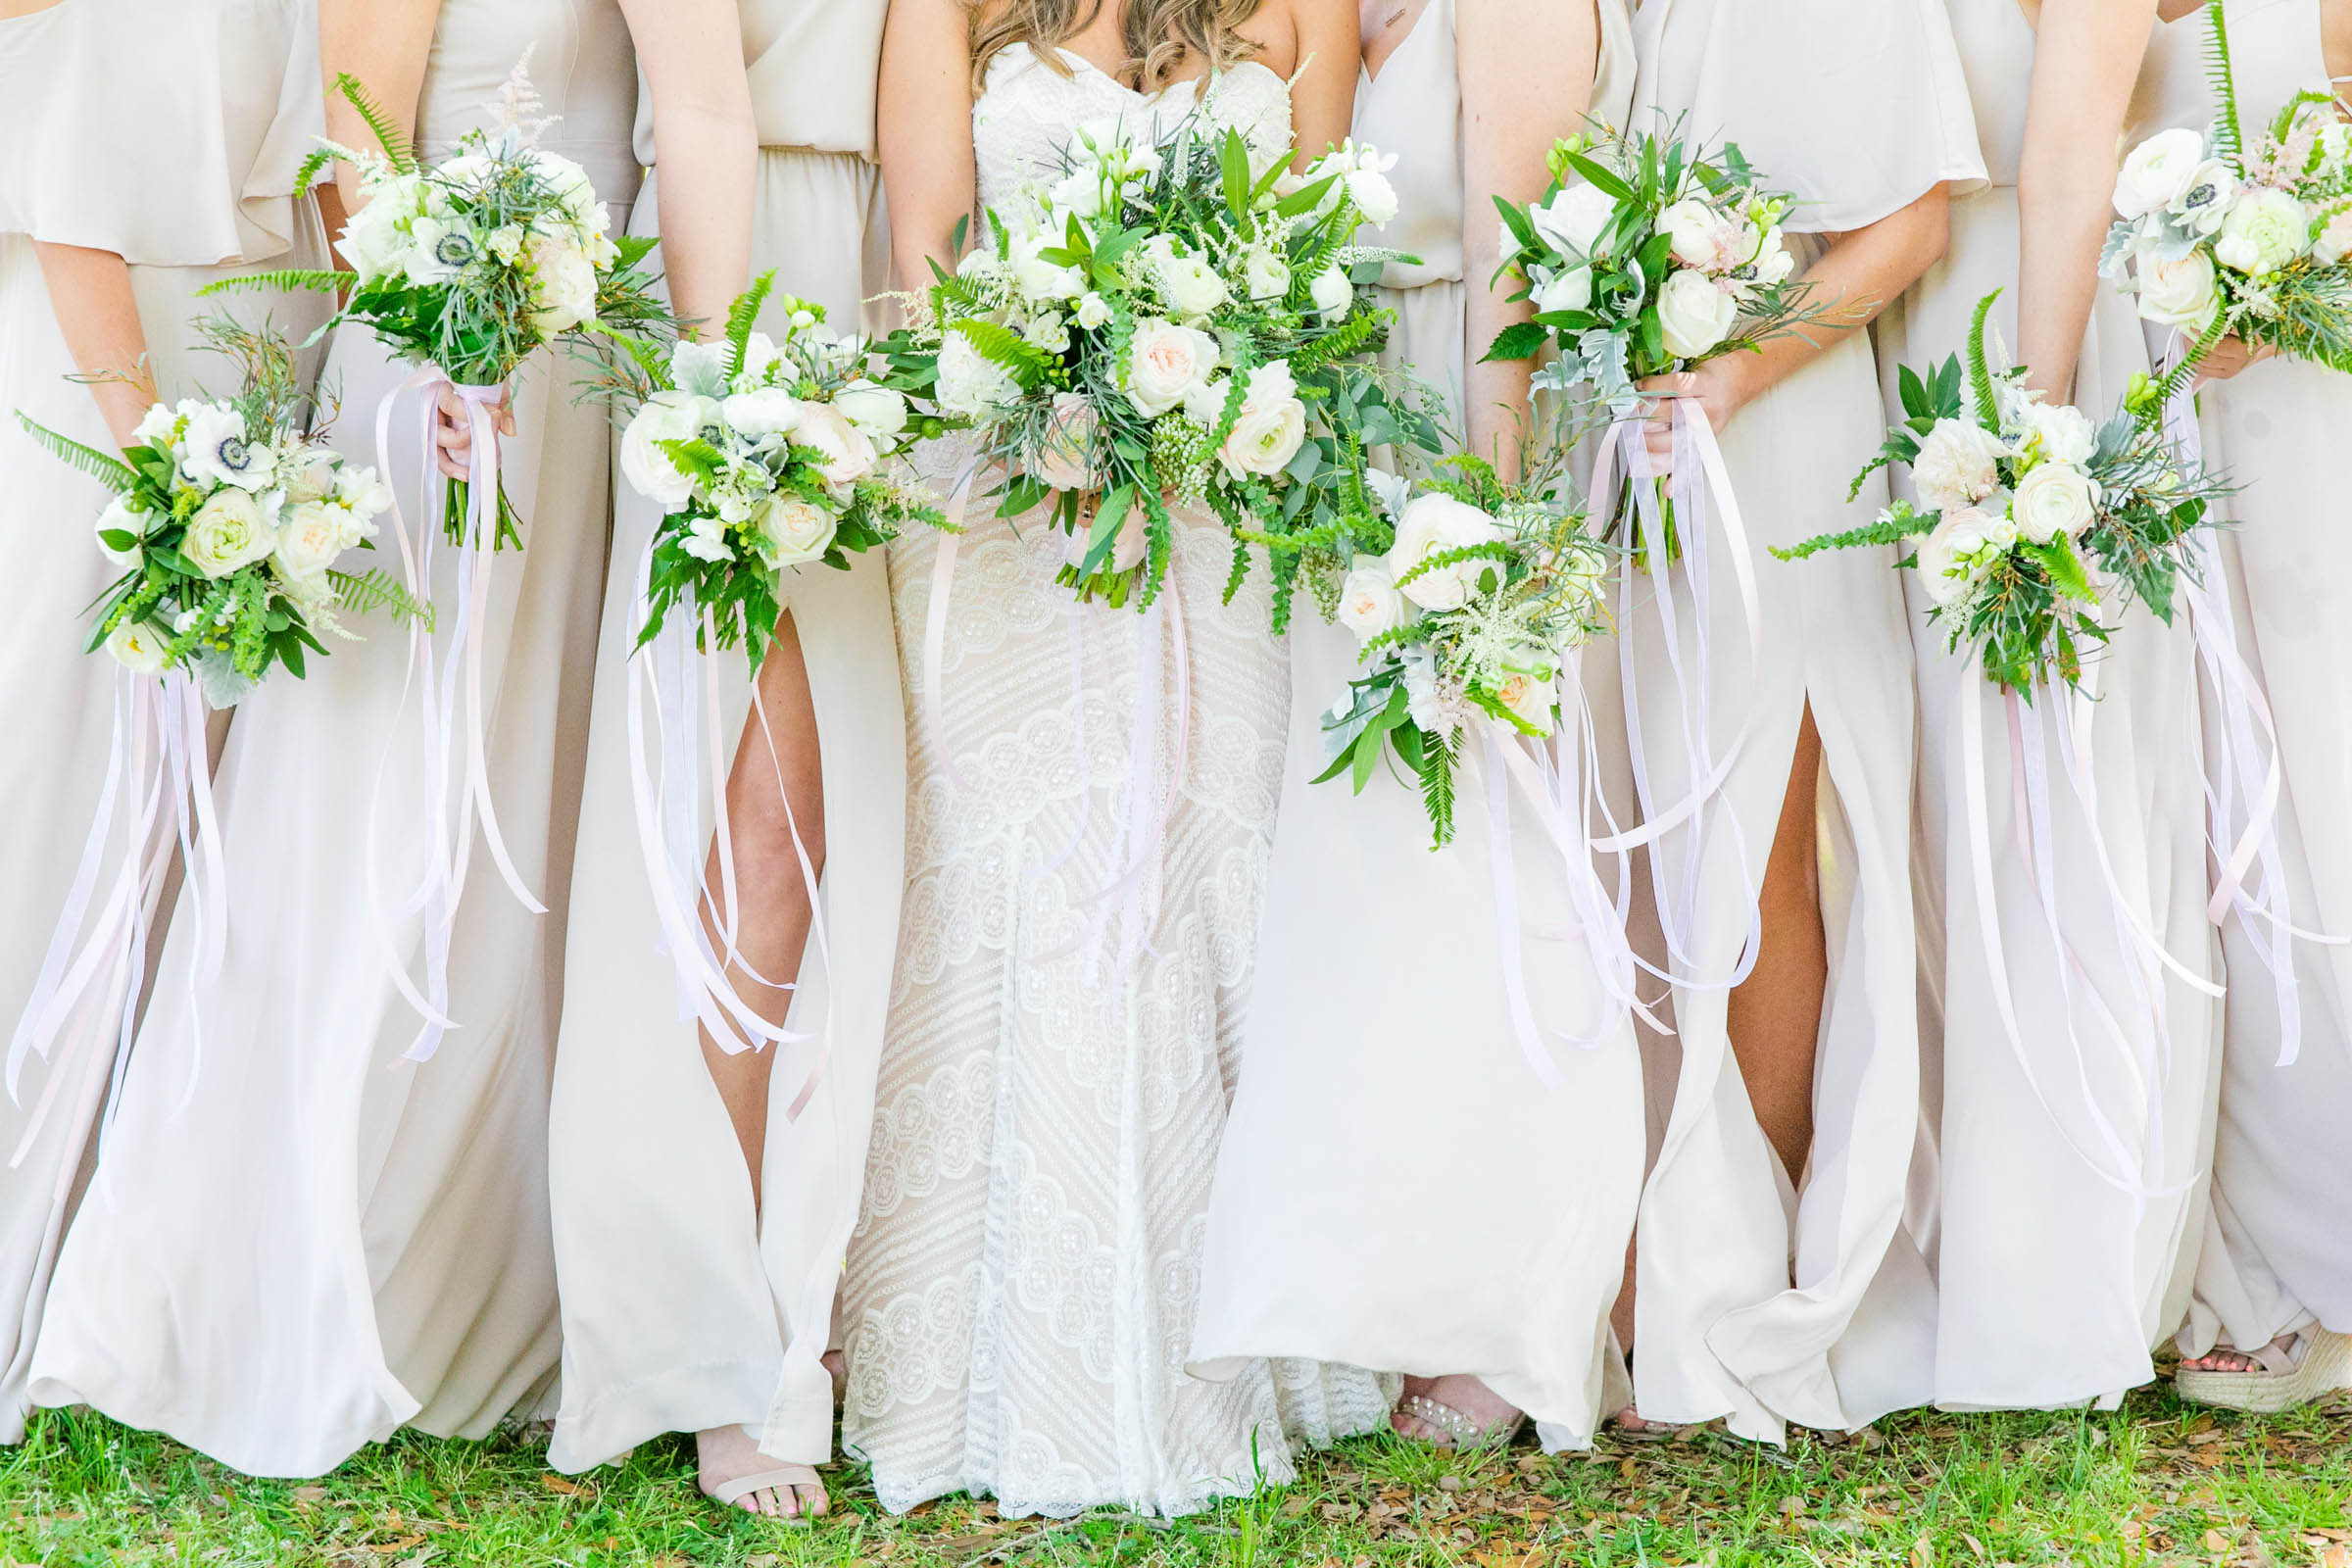 Pretty maids all in a row - photo by Dana Cubbage Weddings